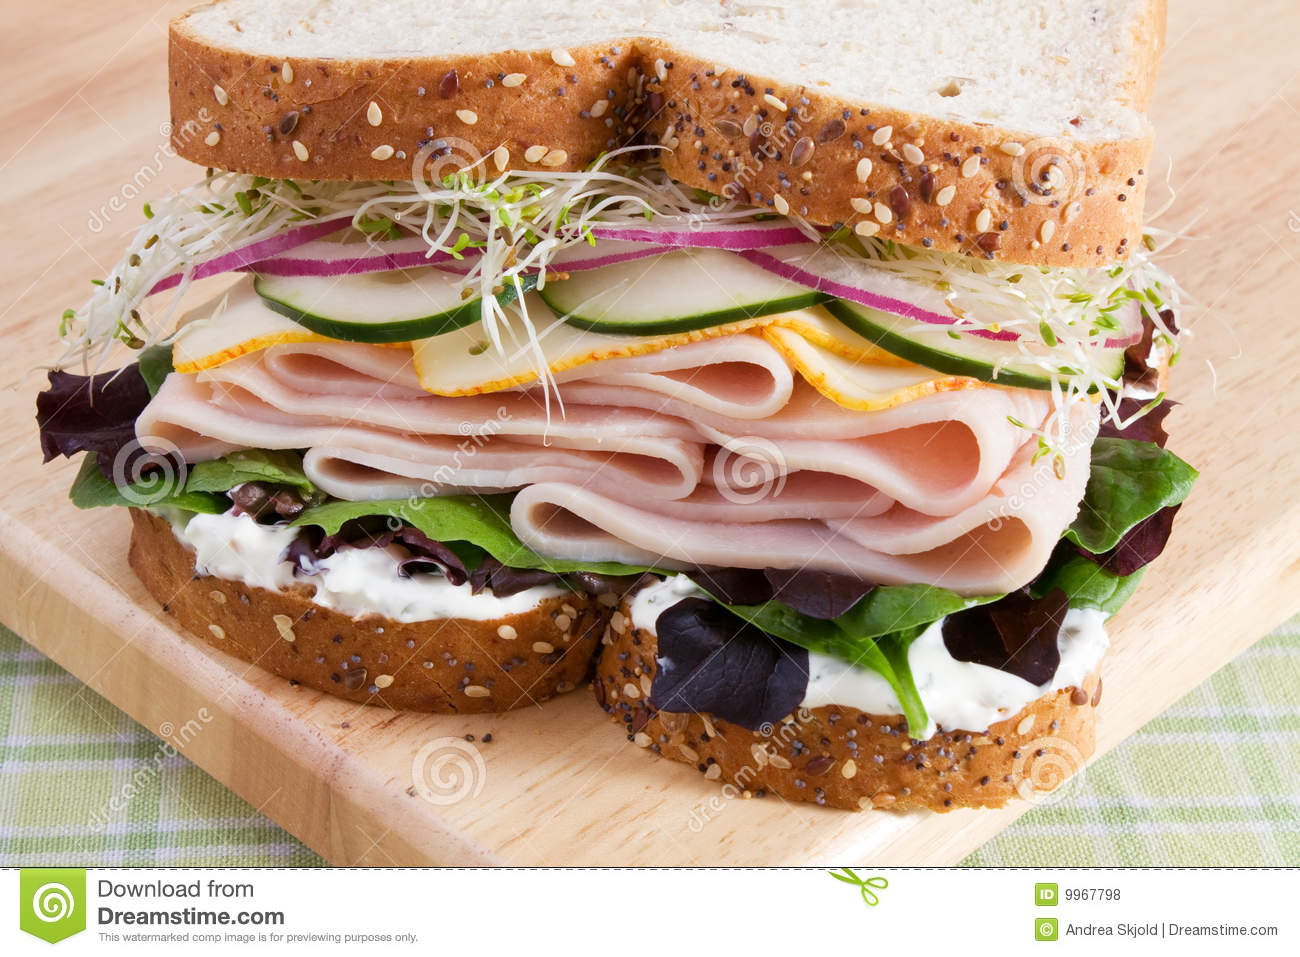 Royalty Free Stock Photos  Healthy Turkey SandwichHealthy Turkey Sandwich